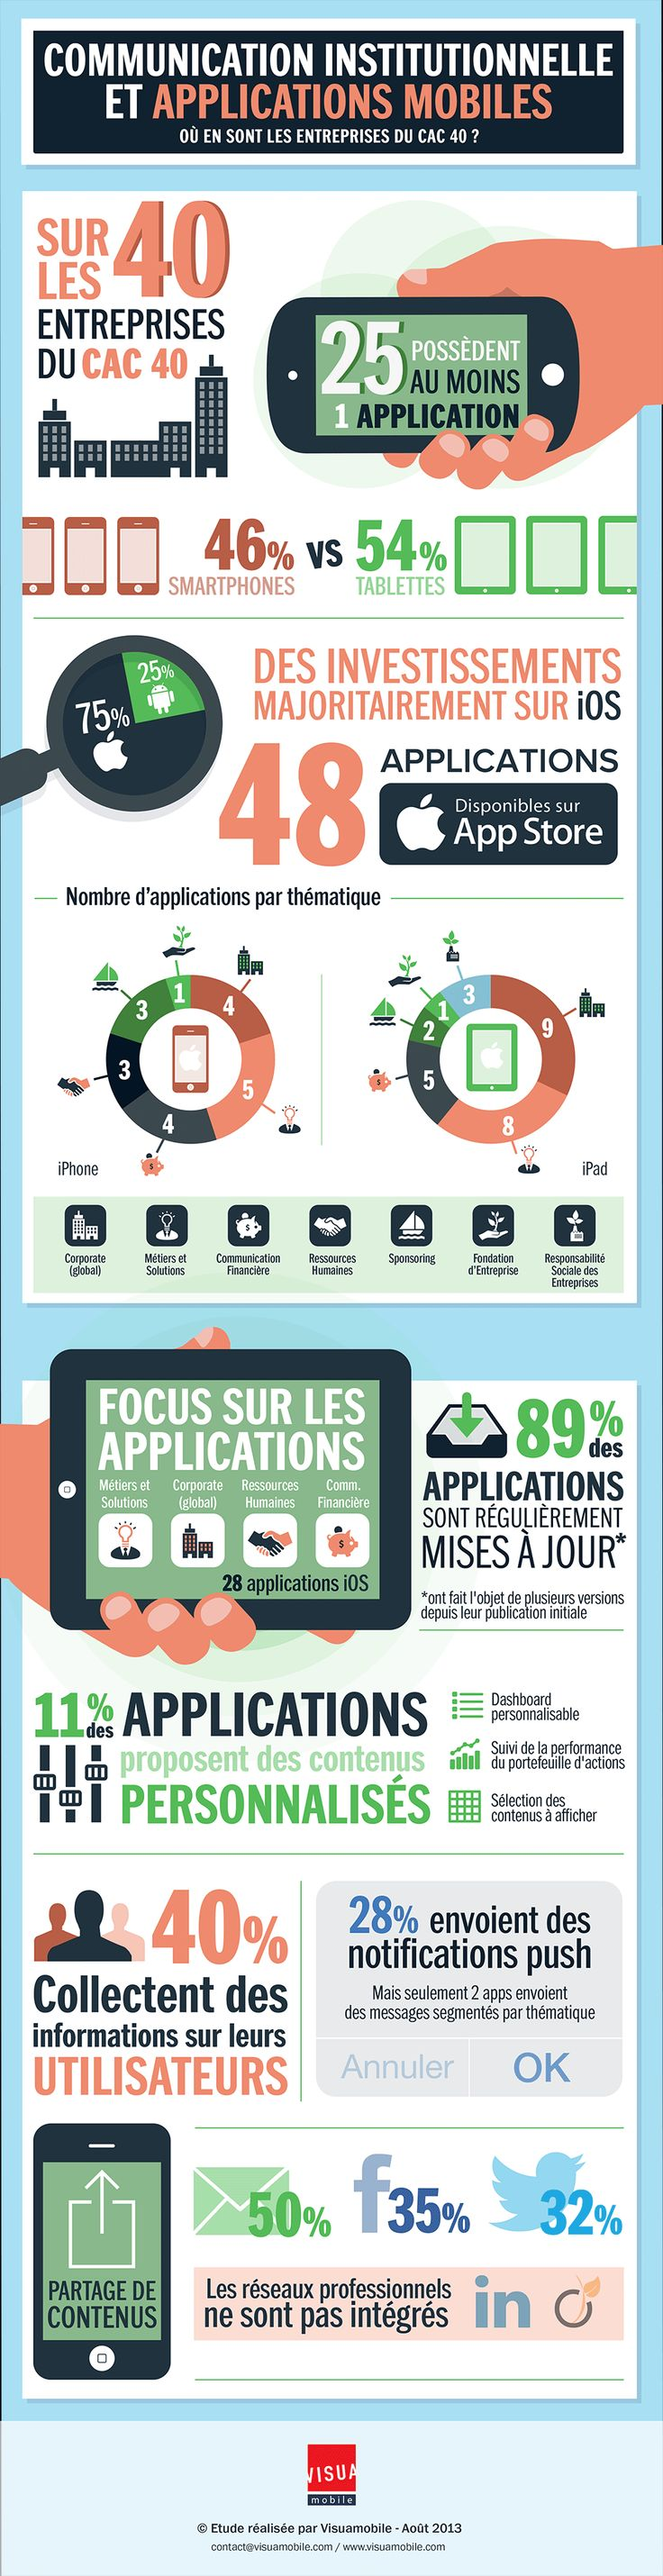 Infographie Communication Institutionnelle et applications mobiles @visuamobile